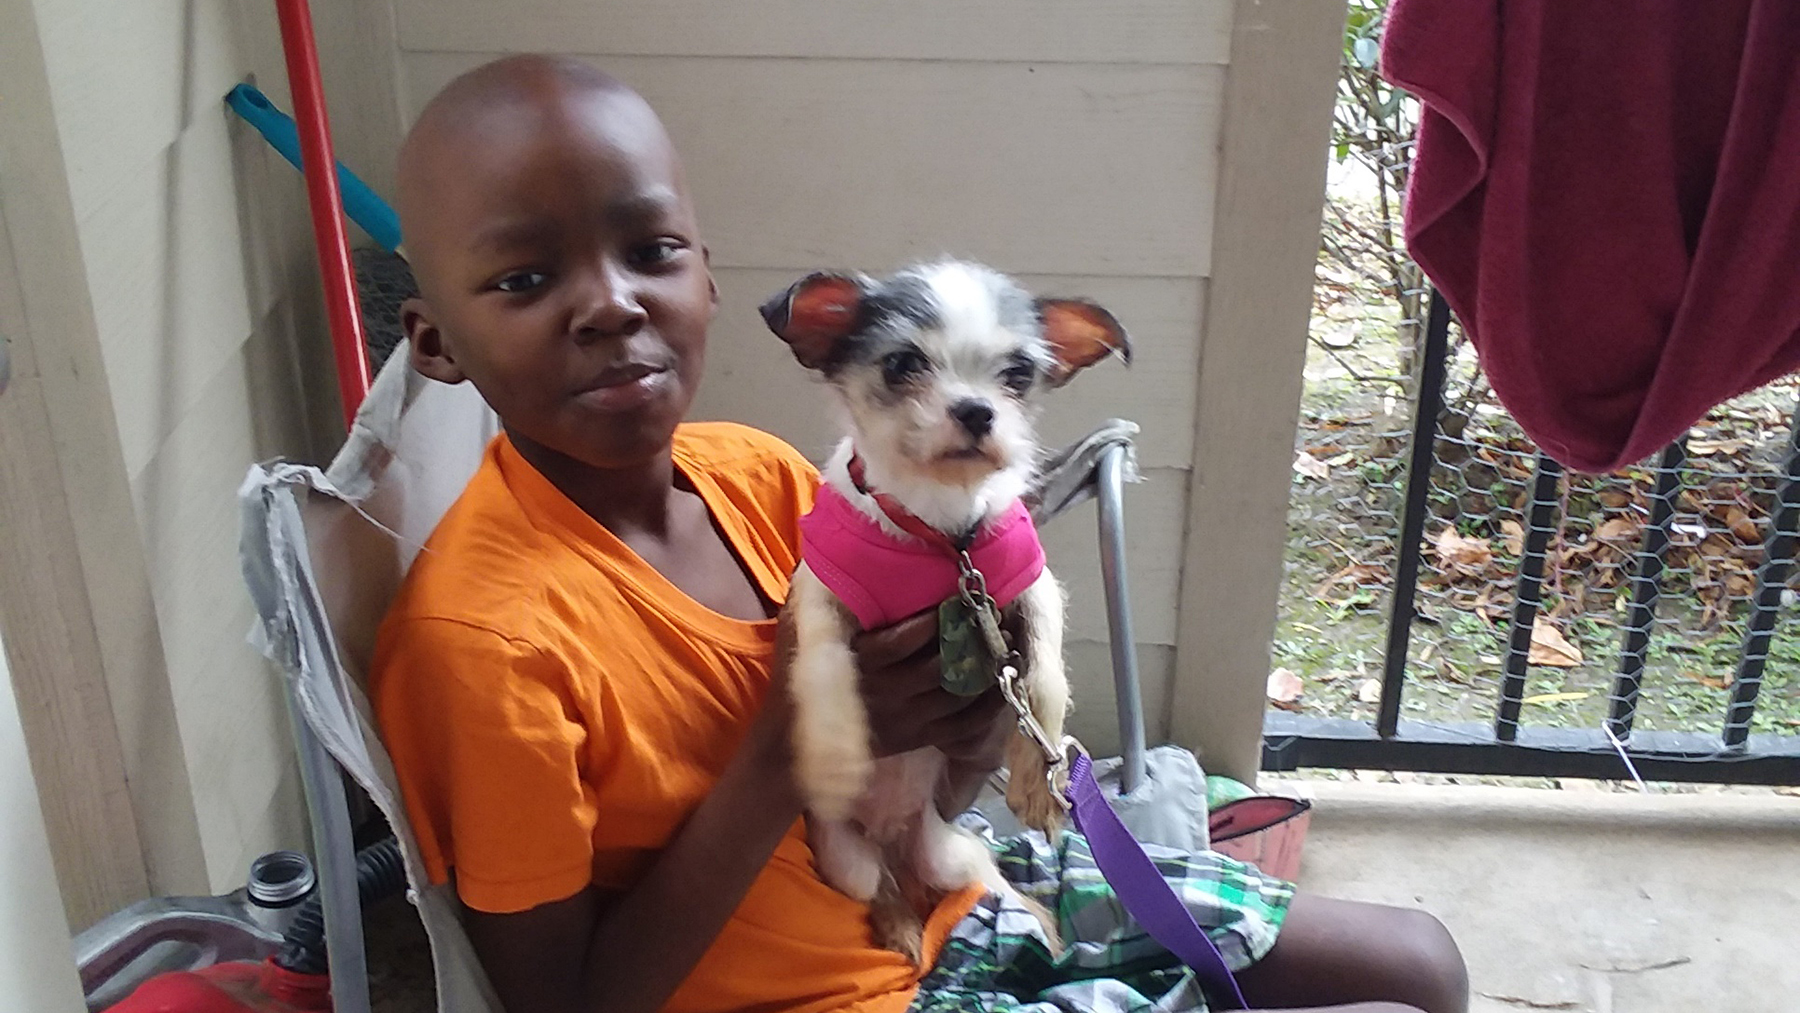 Keyonte Harris, now nine years old, was diagnosed with cancer in the months after Hurricane Harvey damaged his family's Texas home. (Photo courtesy of Family Reach)